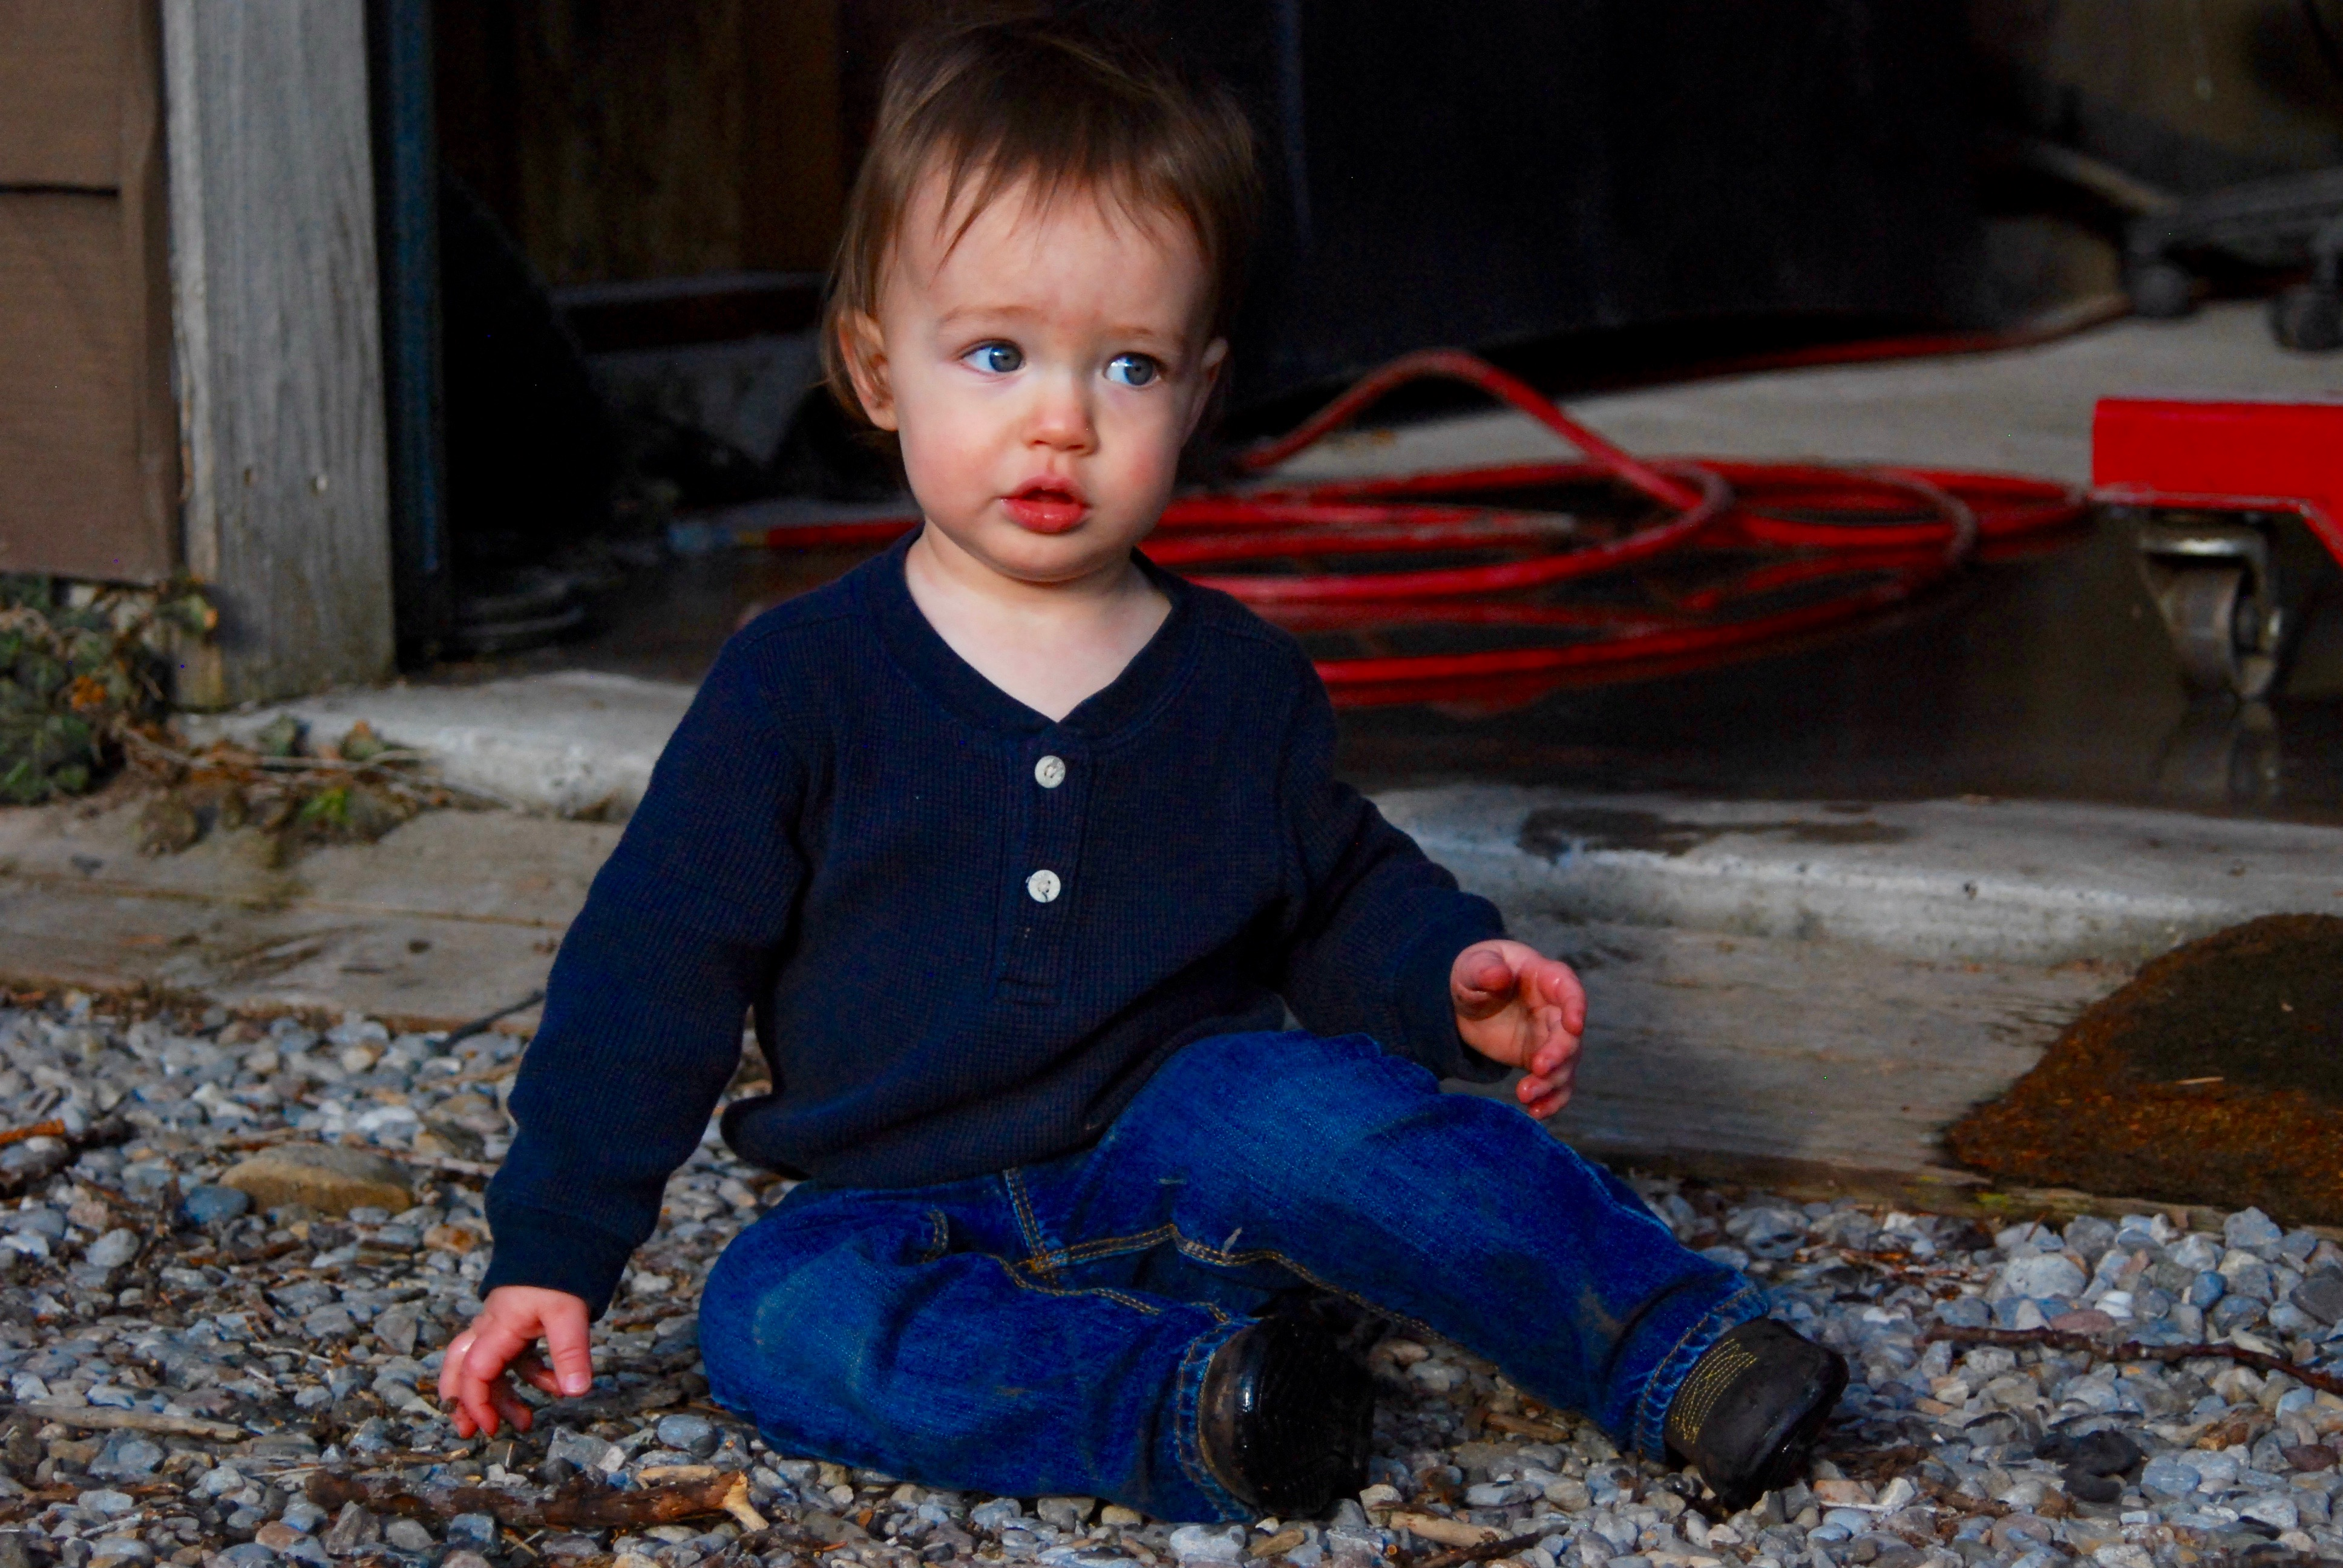 Abram sitting in the driveway